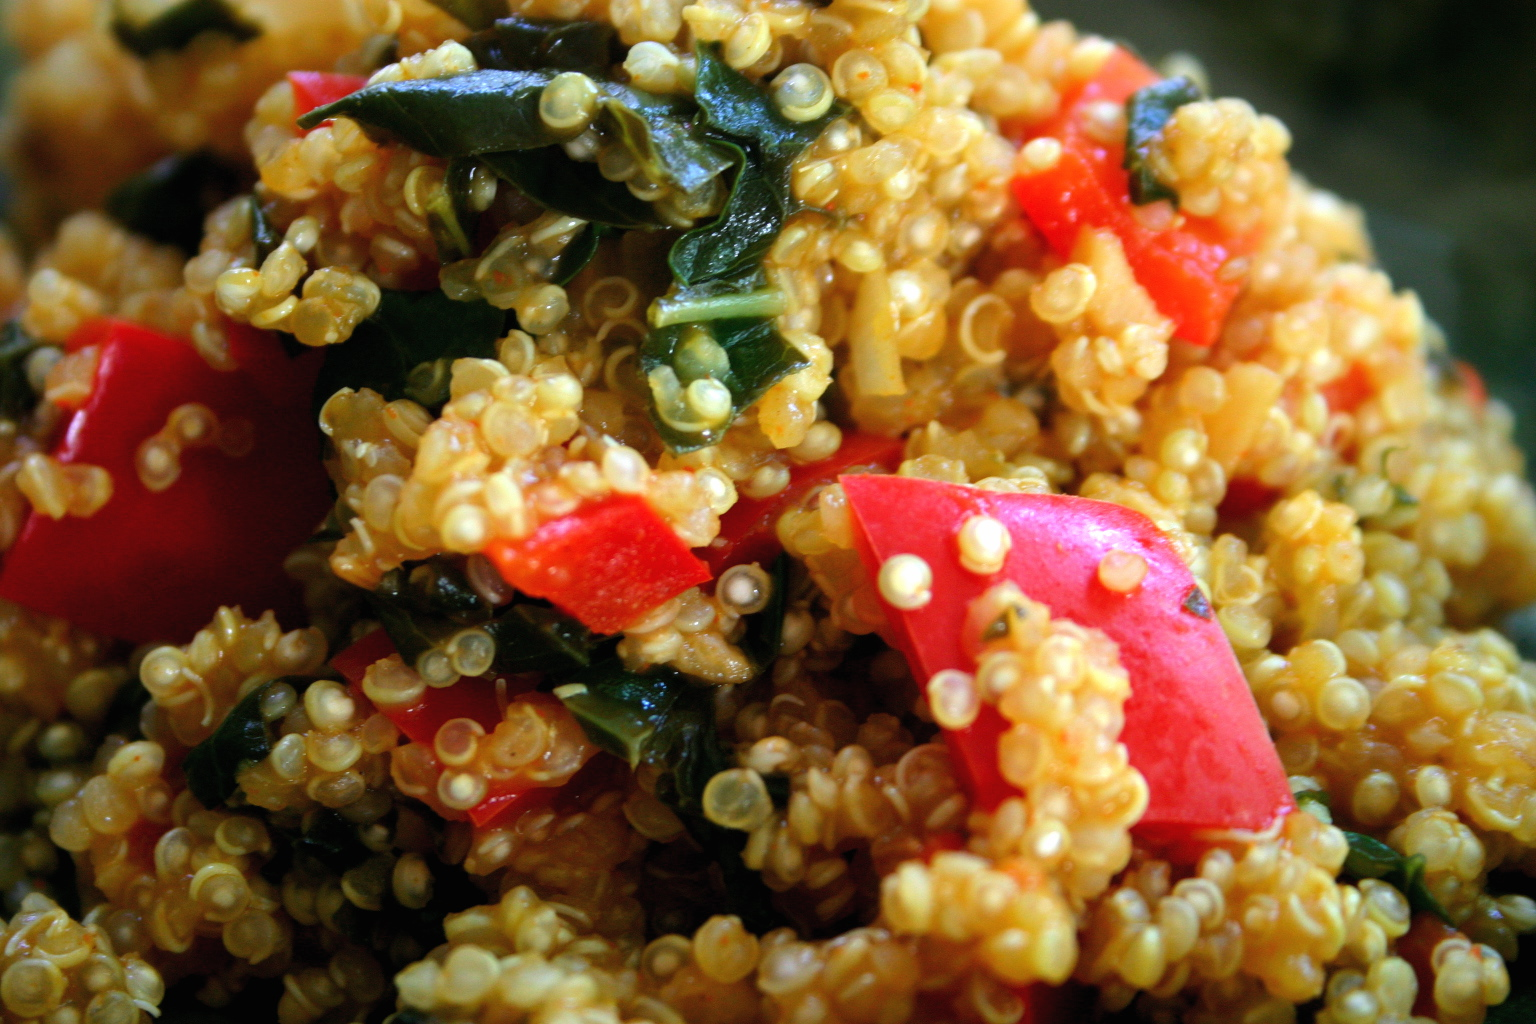 Tex-Mex quinoa with Kale